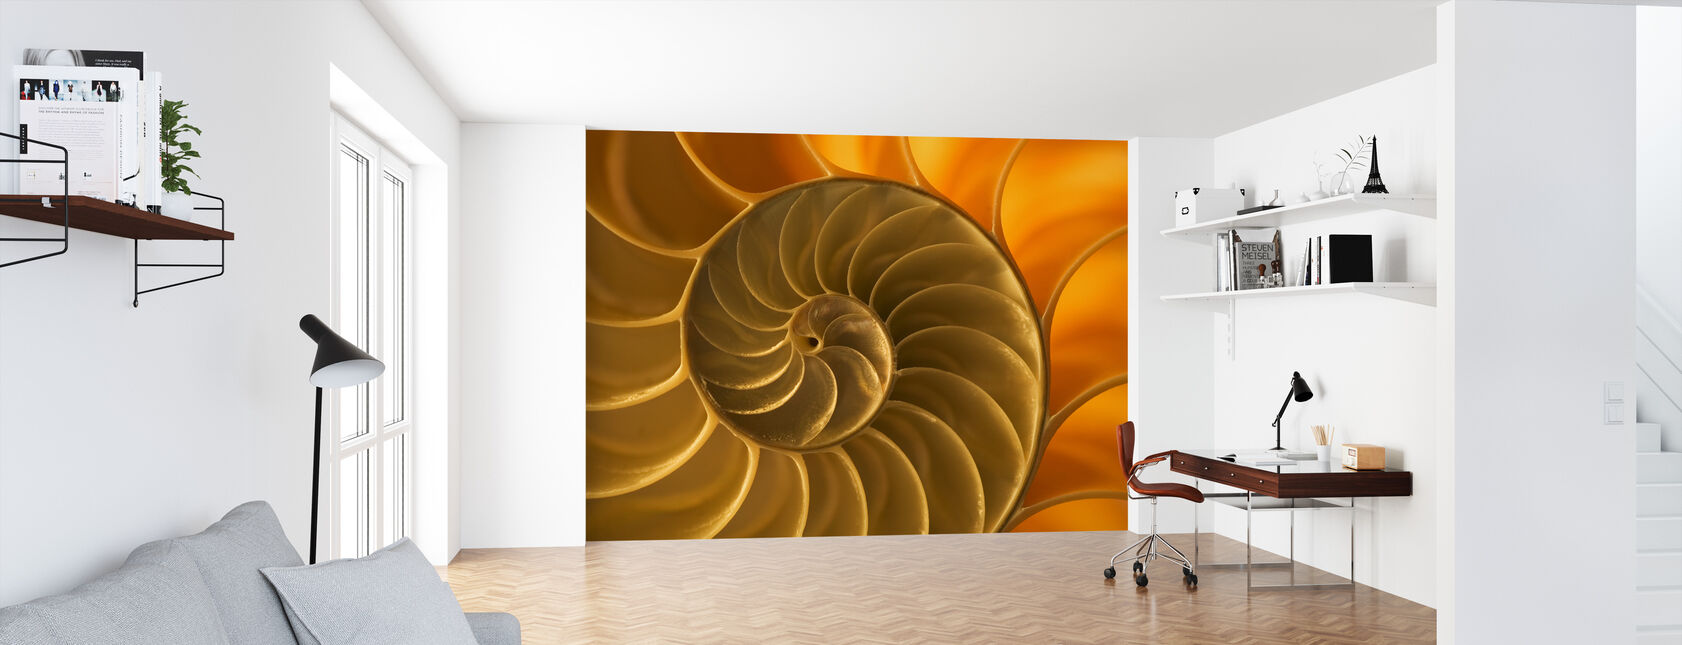 Nautilus Shell - Wallpaper - Office